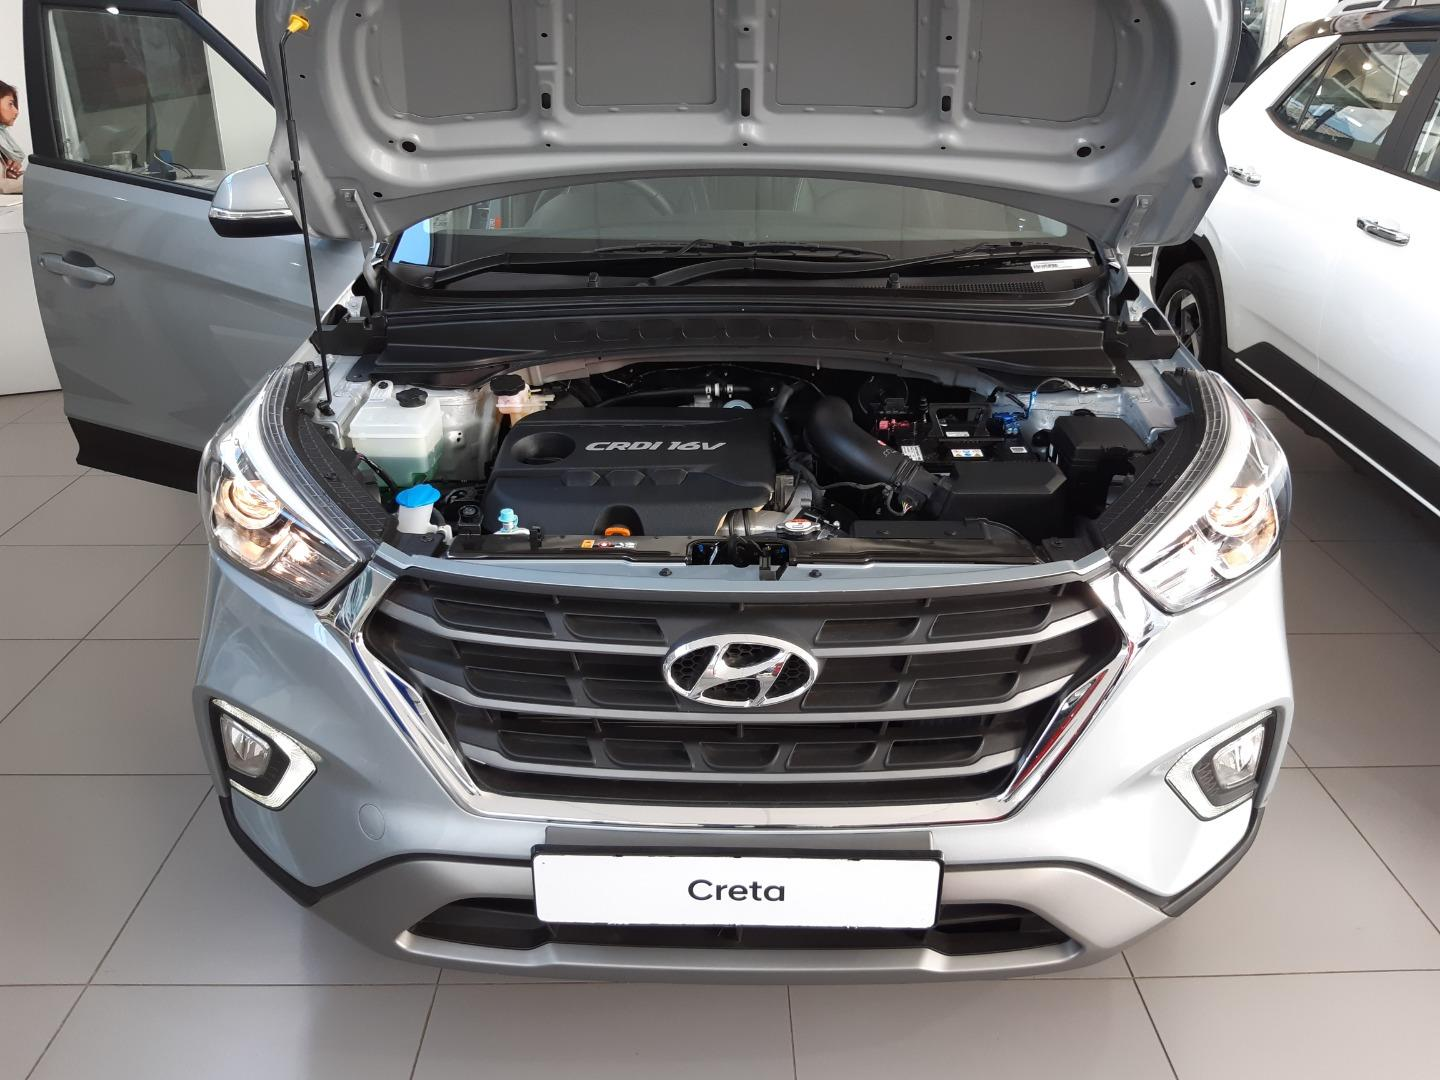 How to replace the car battery in a Hyundai Creta ...